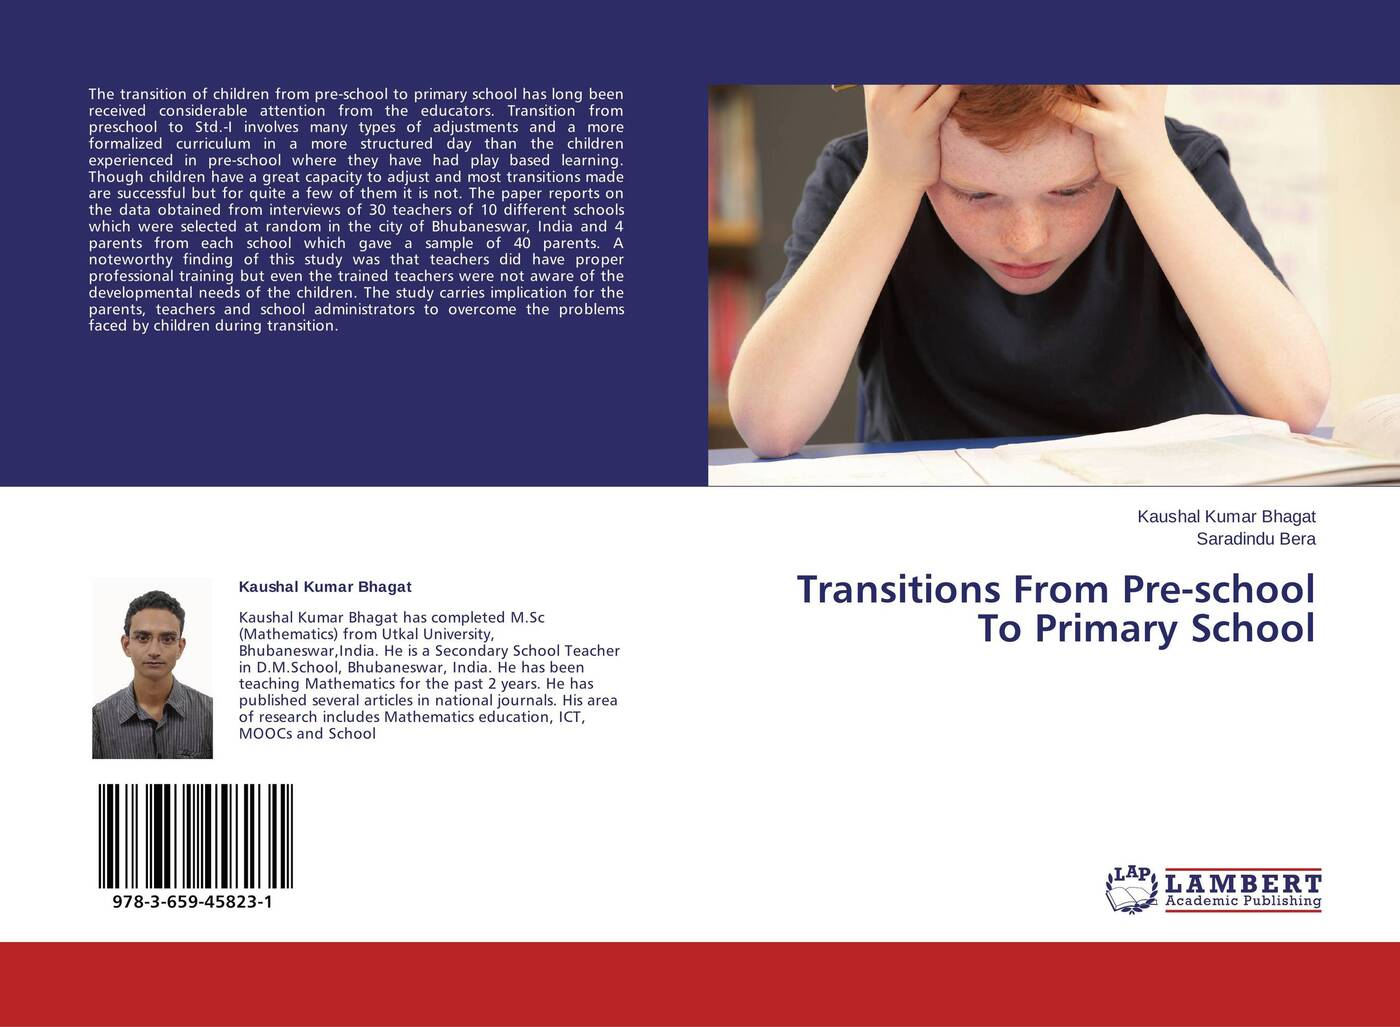 Kaushal Kumar Bhagat and Saradindu Bera Transitions From Pre-school To Primary School gerard o shea educating in christ a practical handbook for developing the catholic faith from childhood to adolescence for parents teachers catechists and school administrators